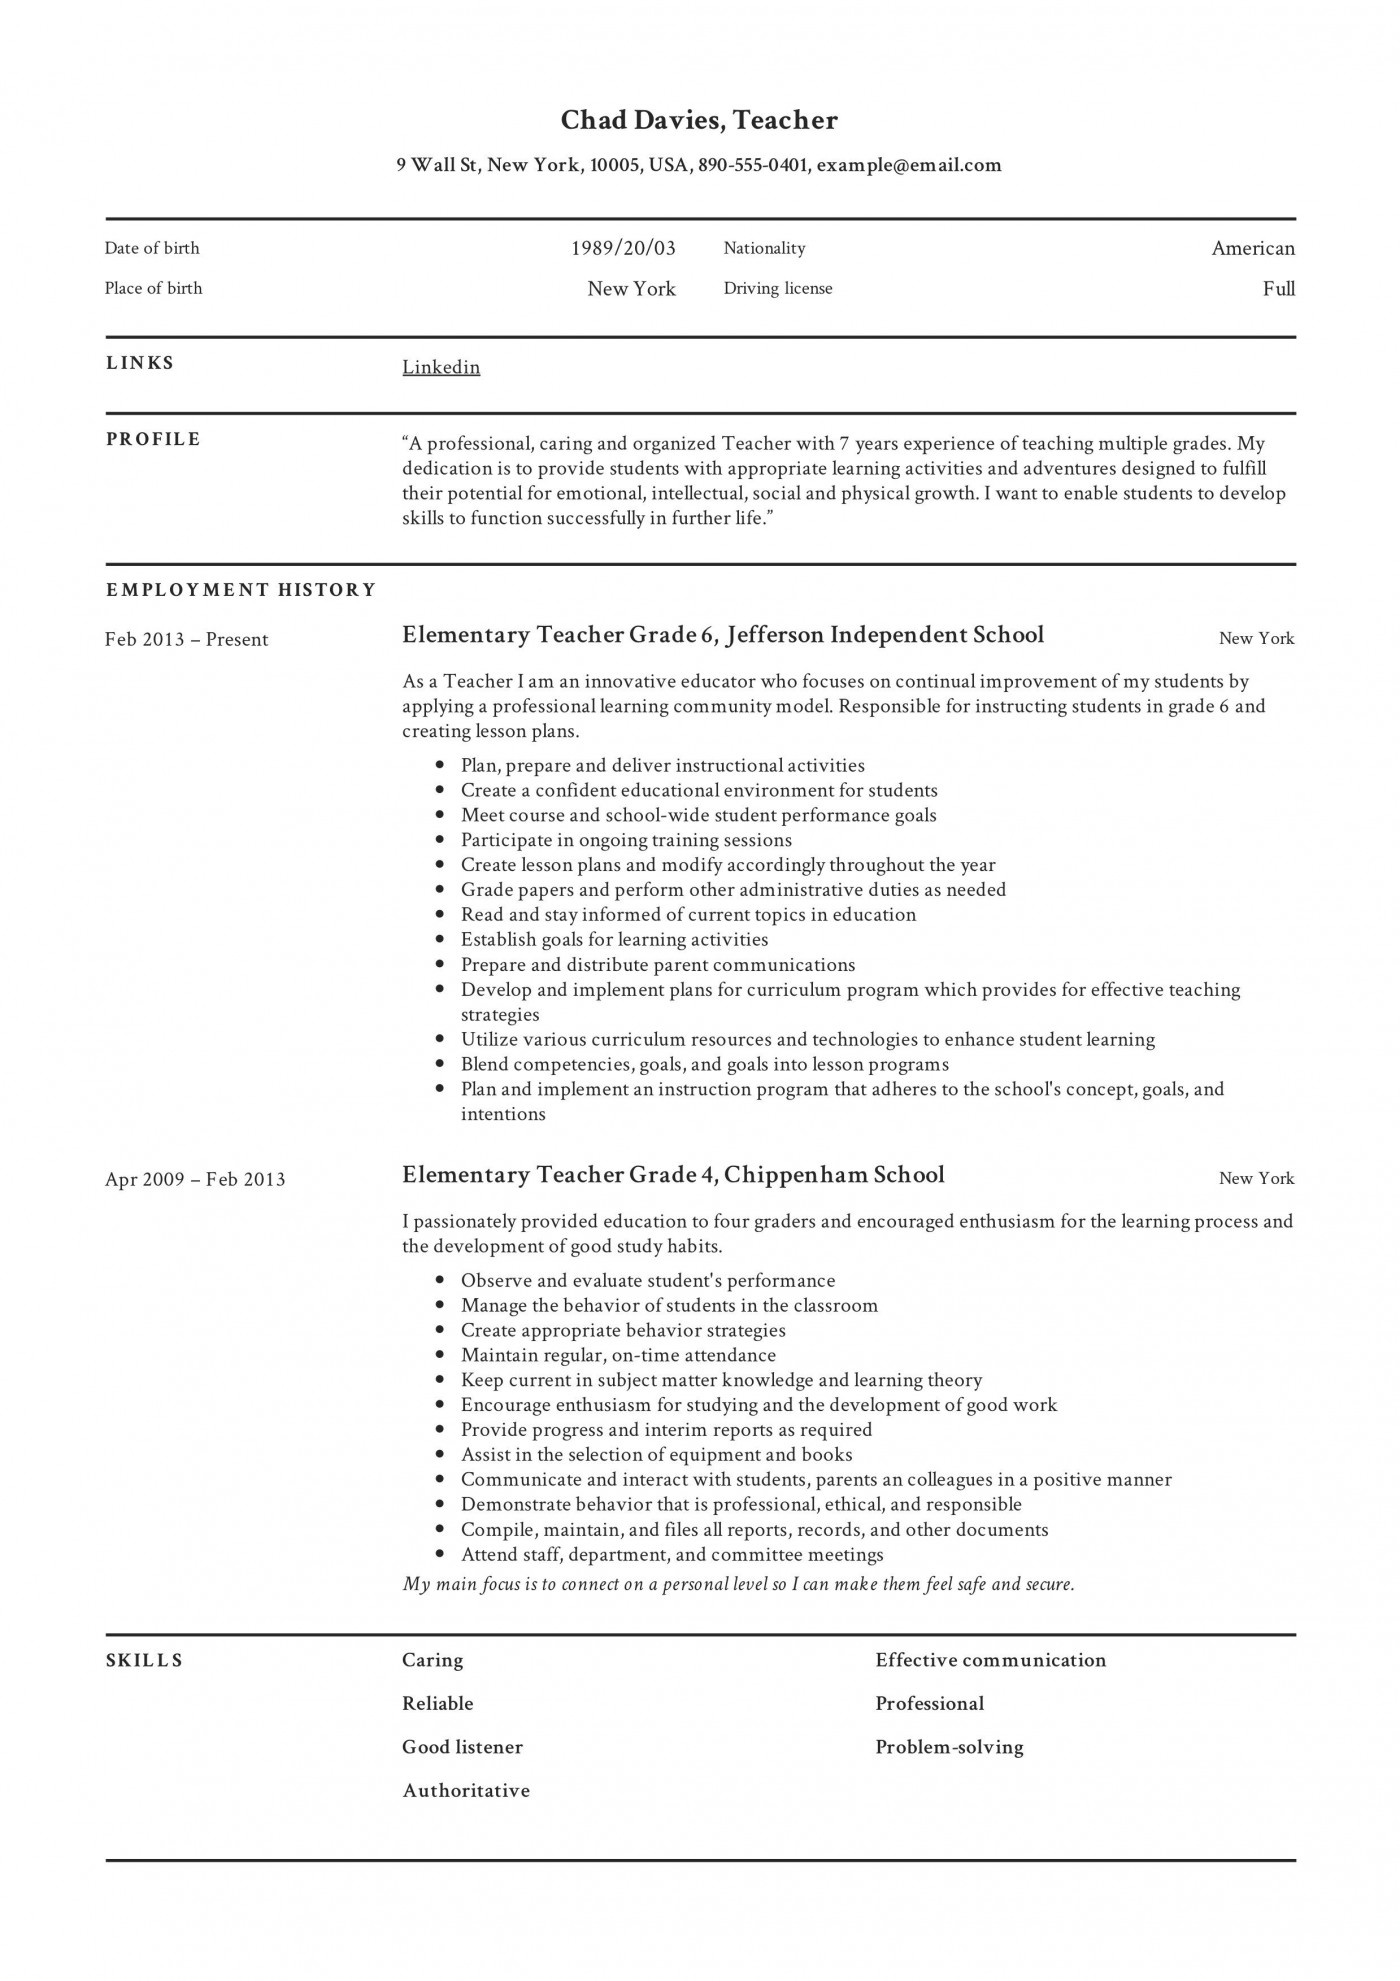 003 Frightening Good Resume For Teaching Job High Definition  Sample Teacher Fresher In India1400